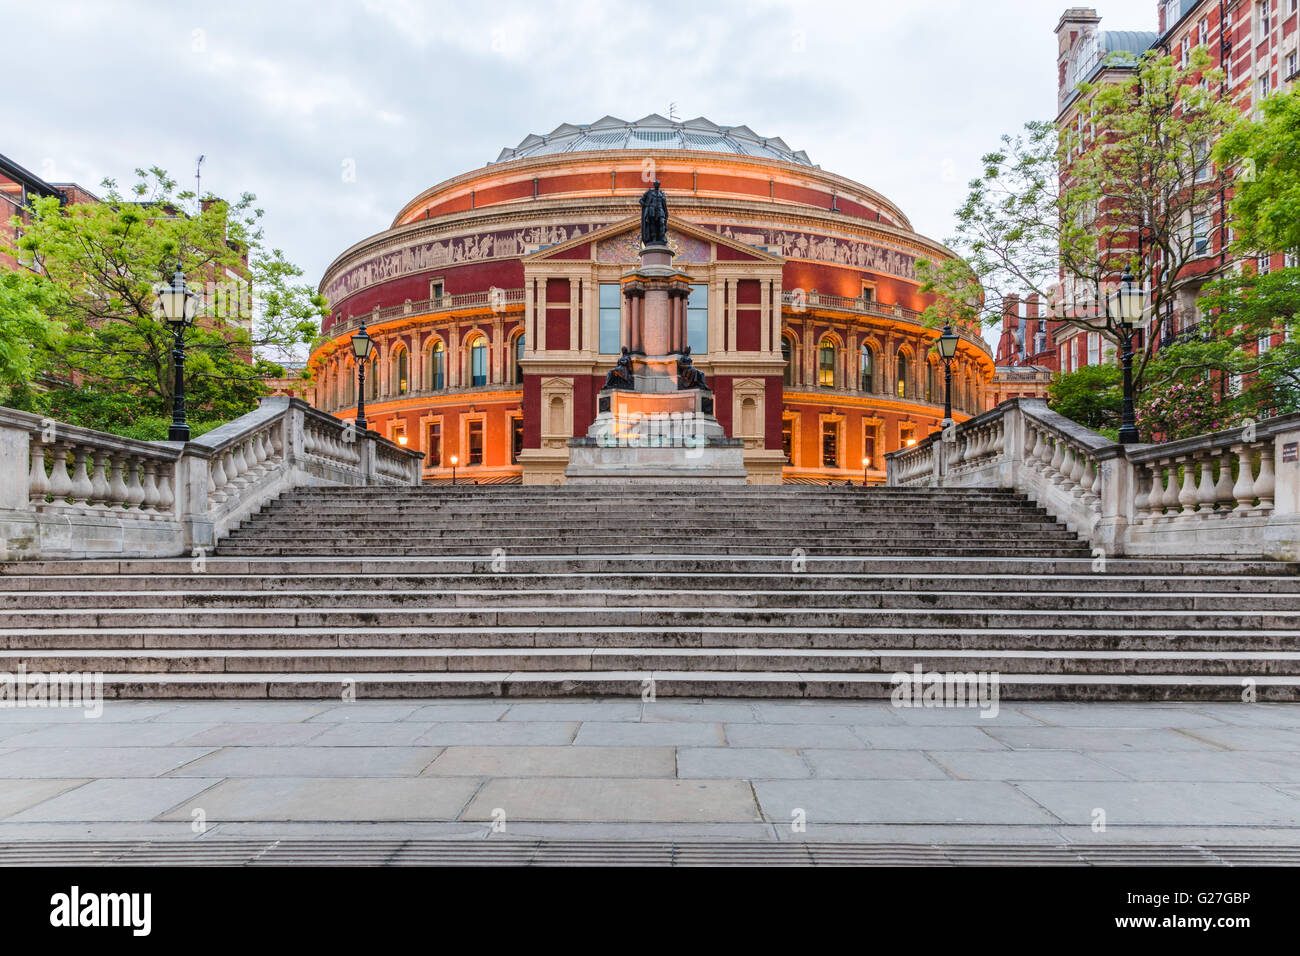 Royal Albert Hall, Londres, Angleterre, Royaume-Uni Photo Stock